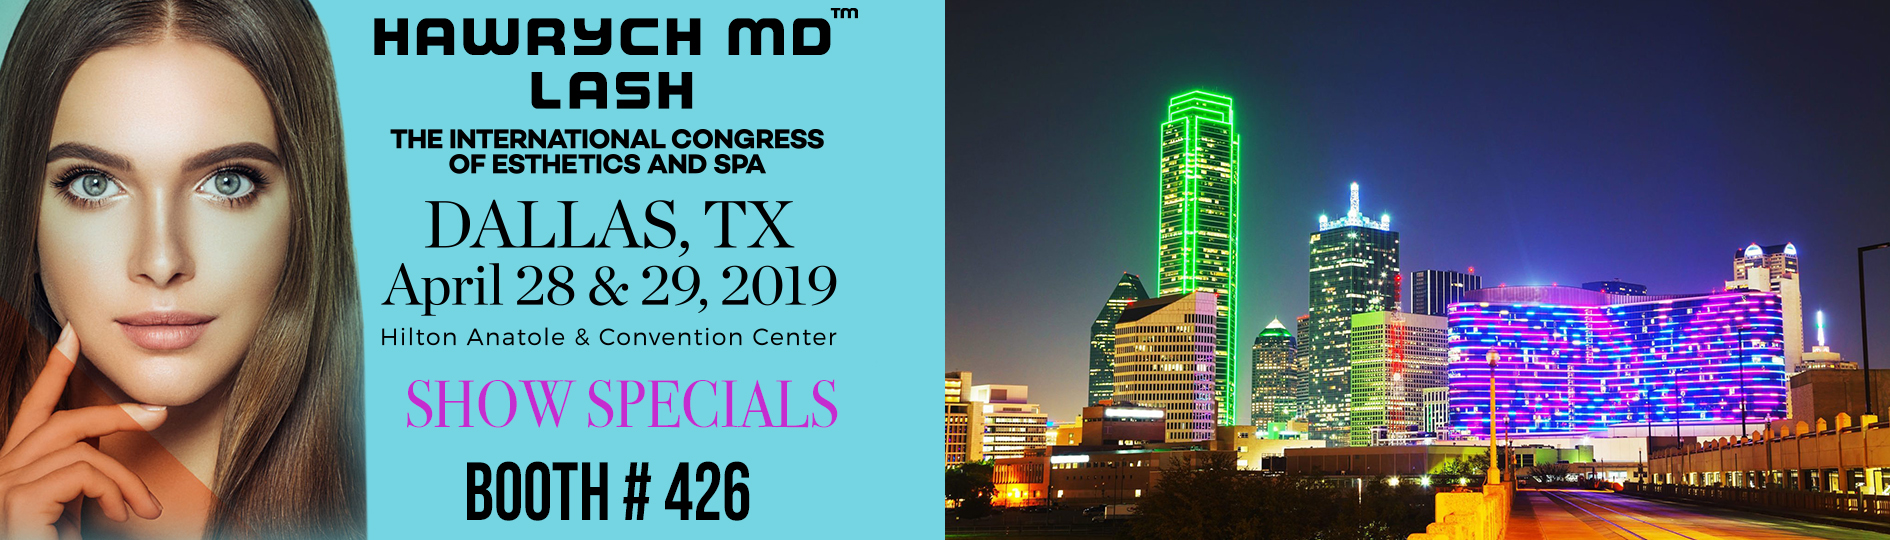 dallas beauty show iescs 2019